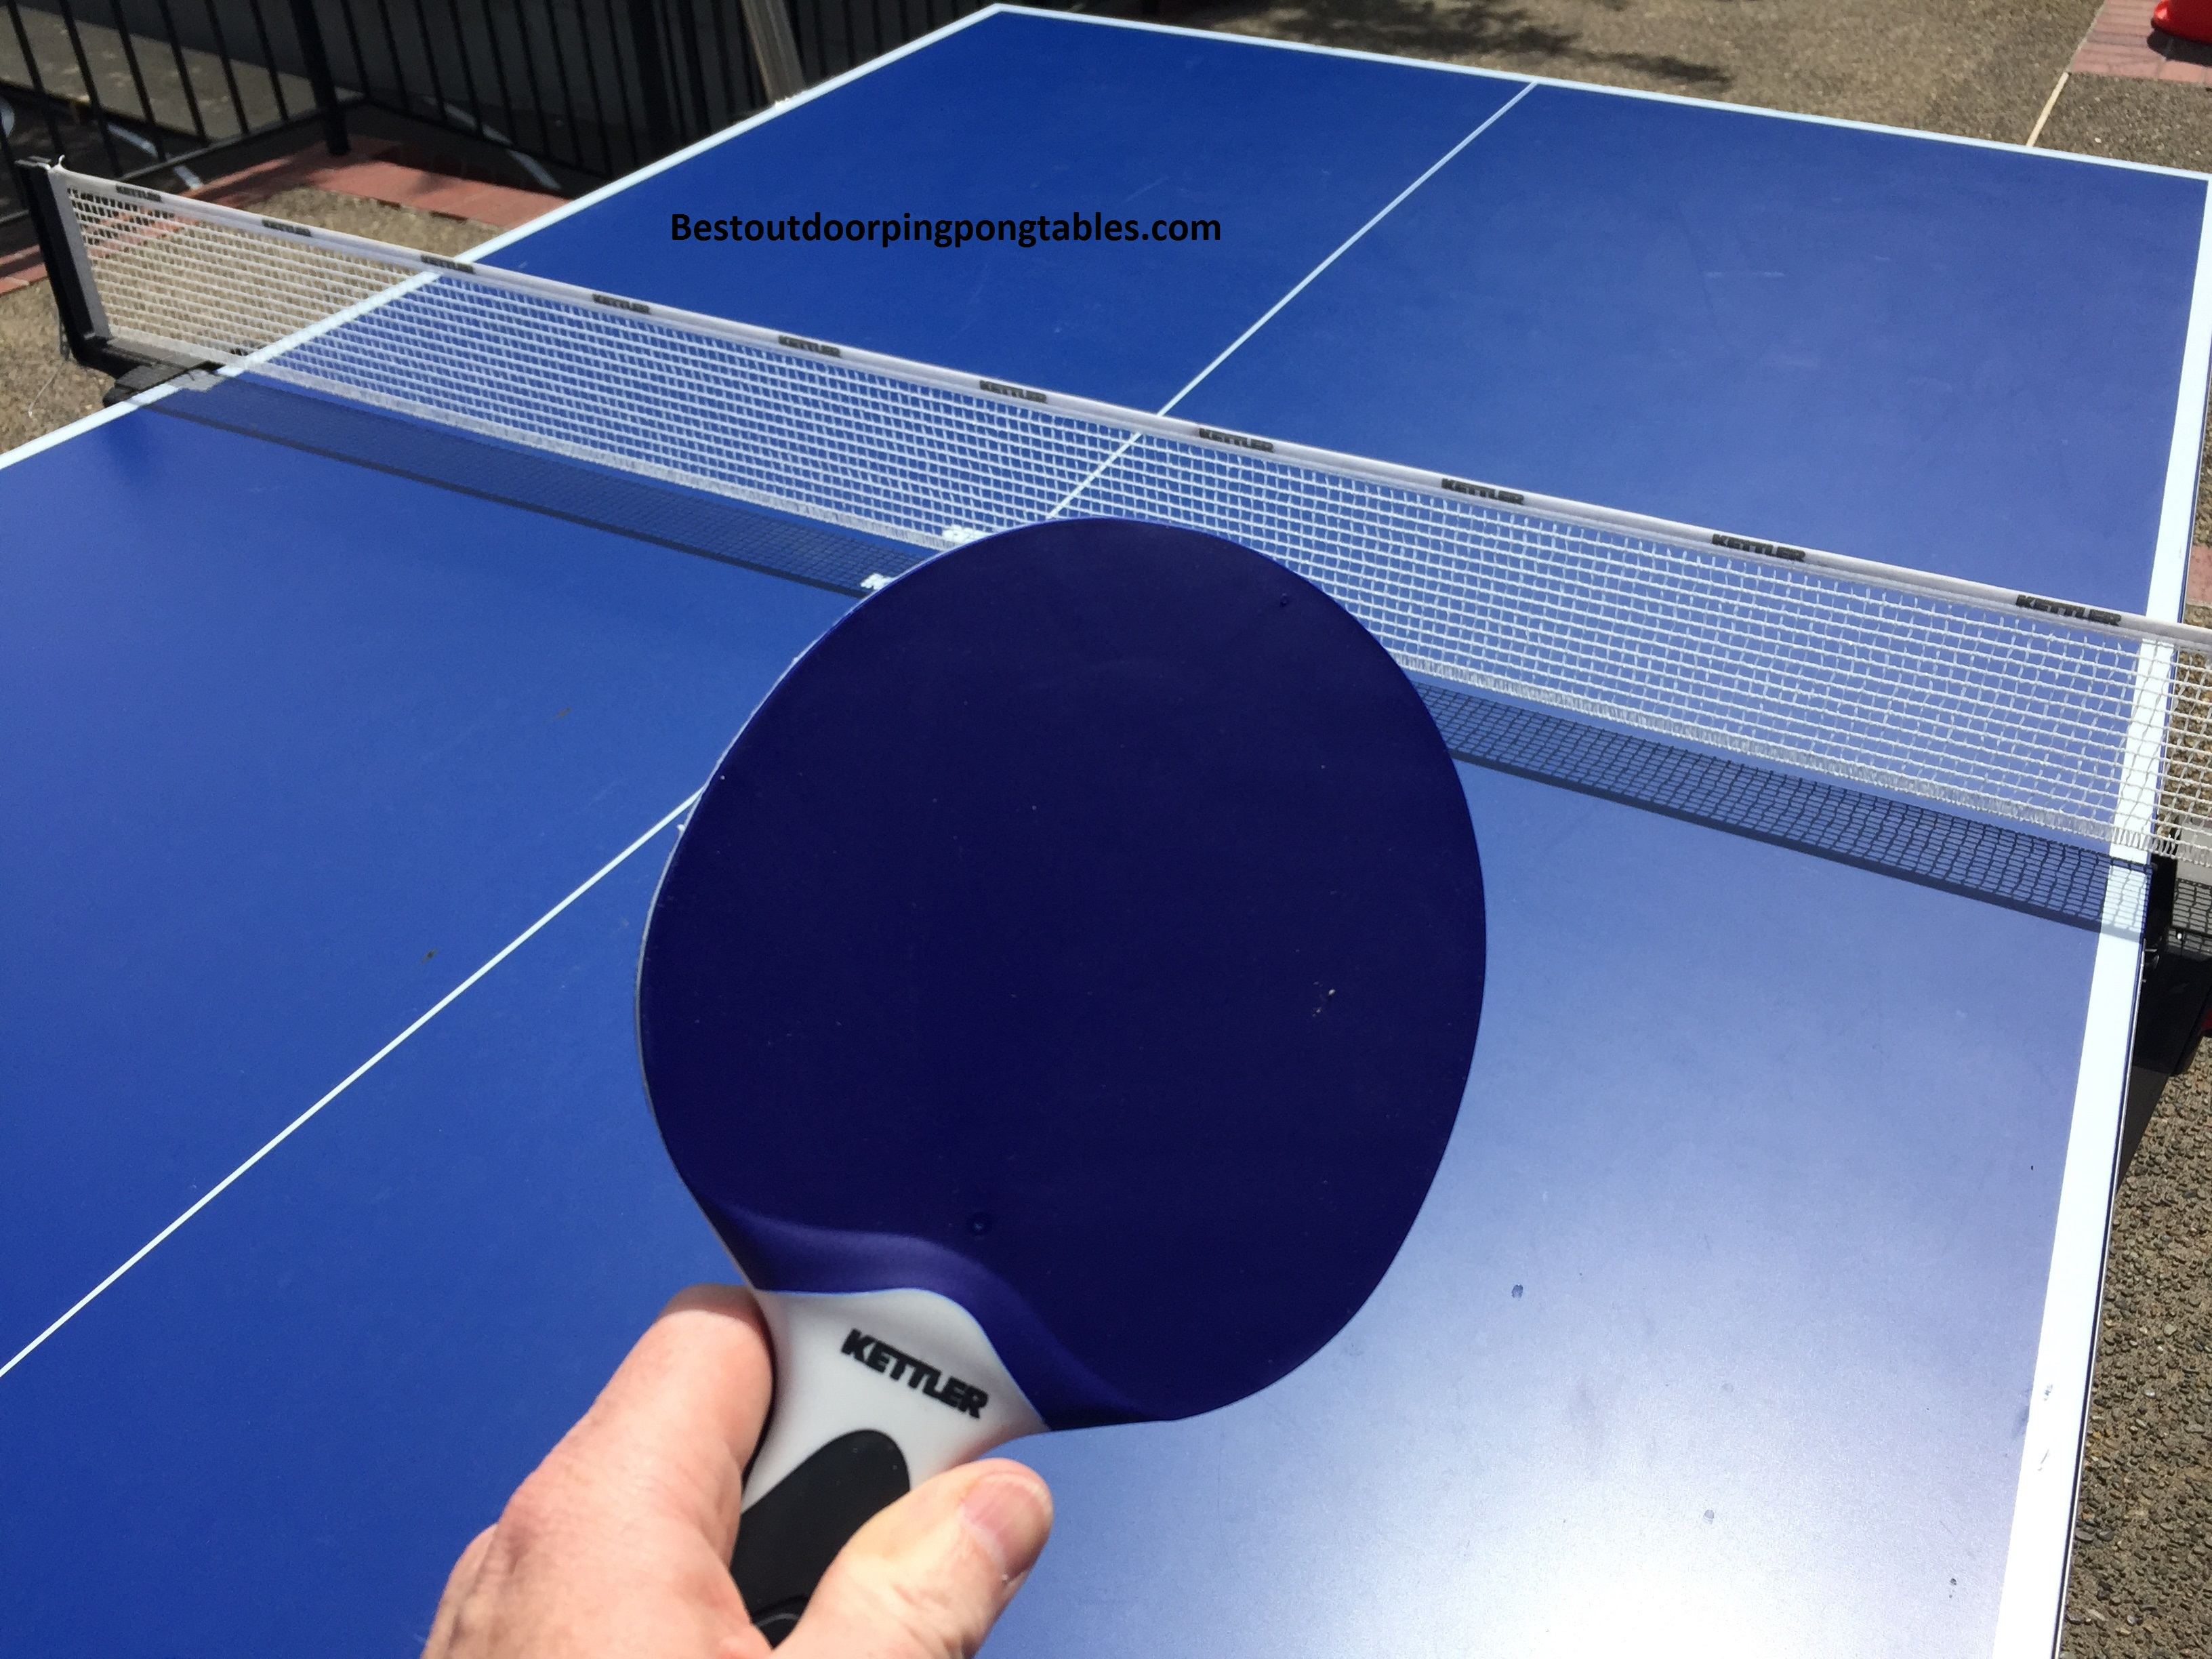 Best Outdoor Ping Pong Paddles